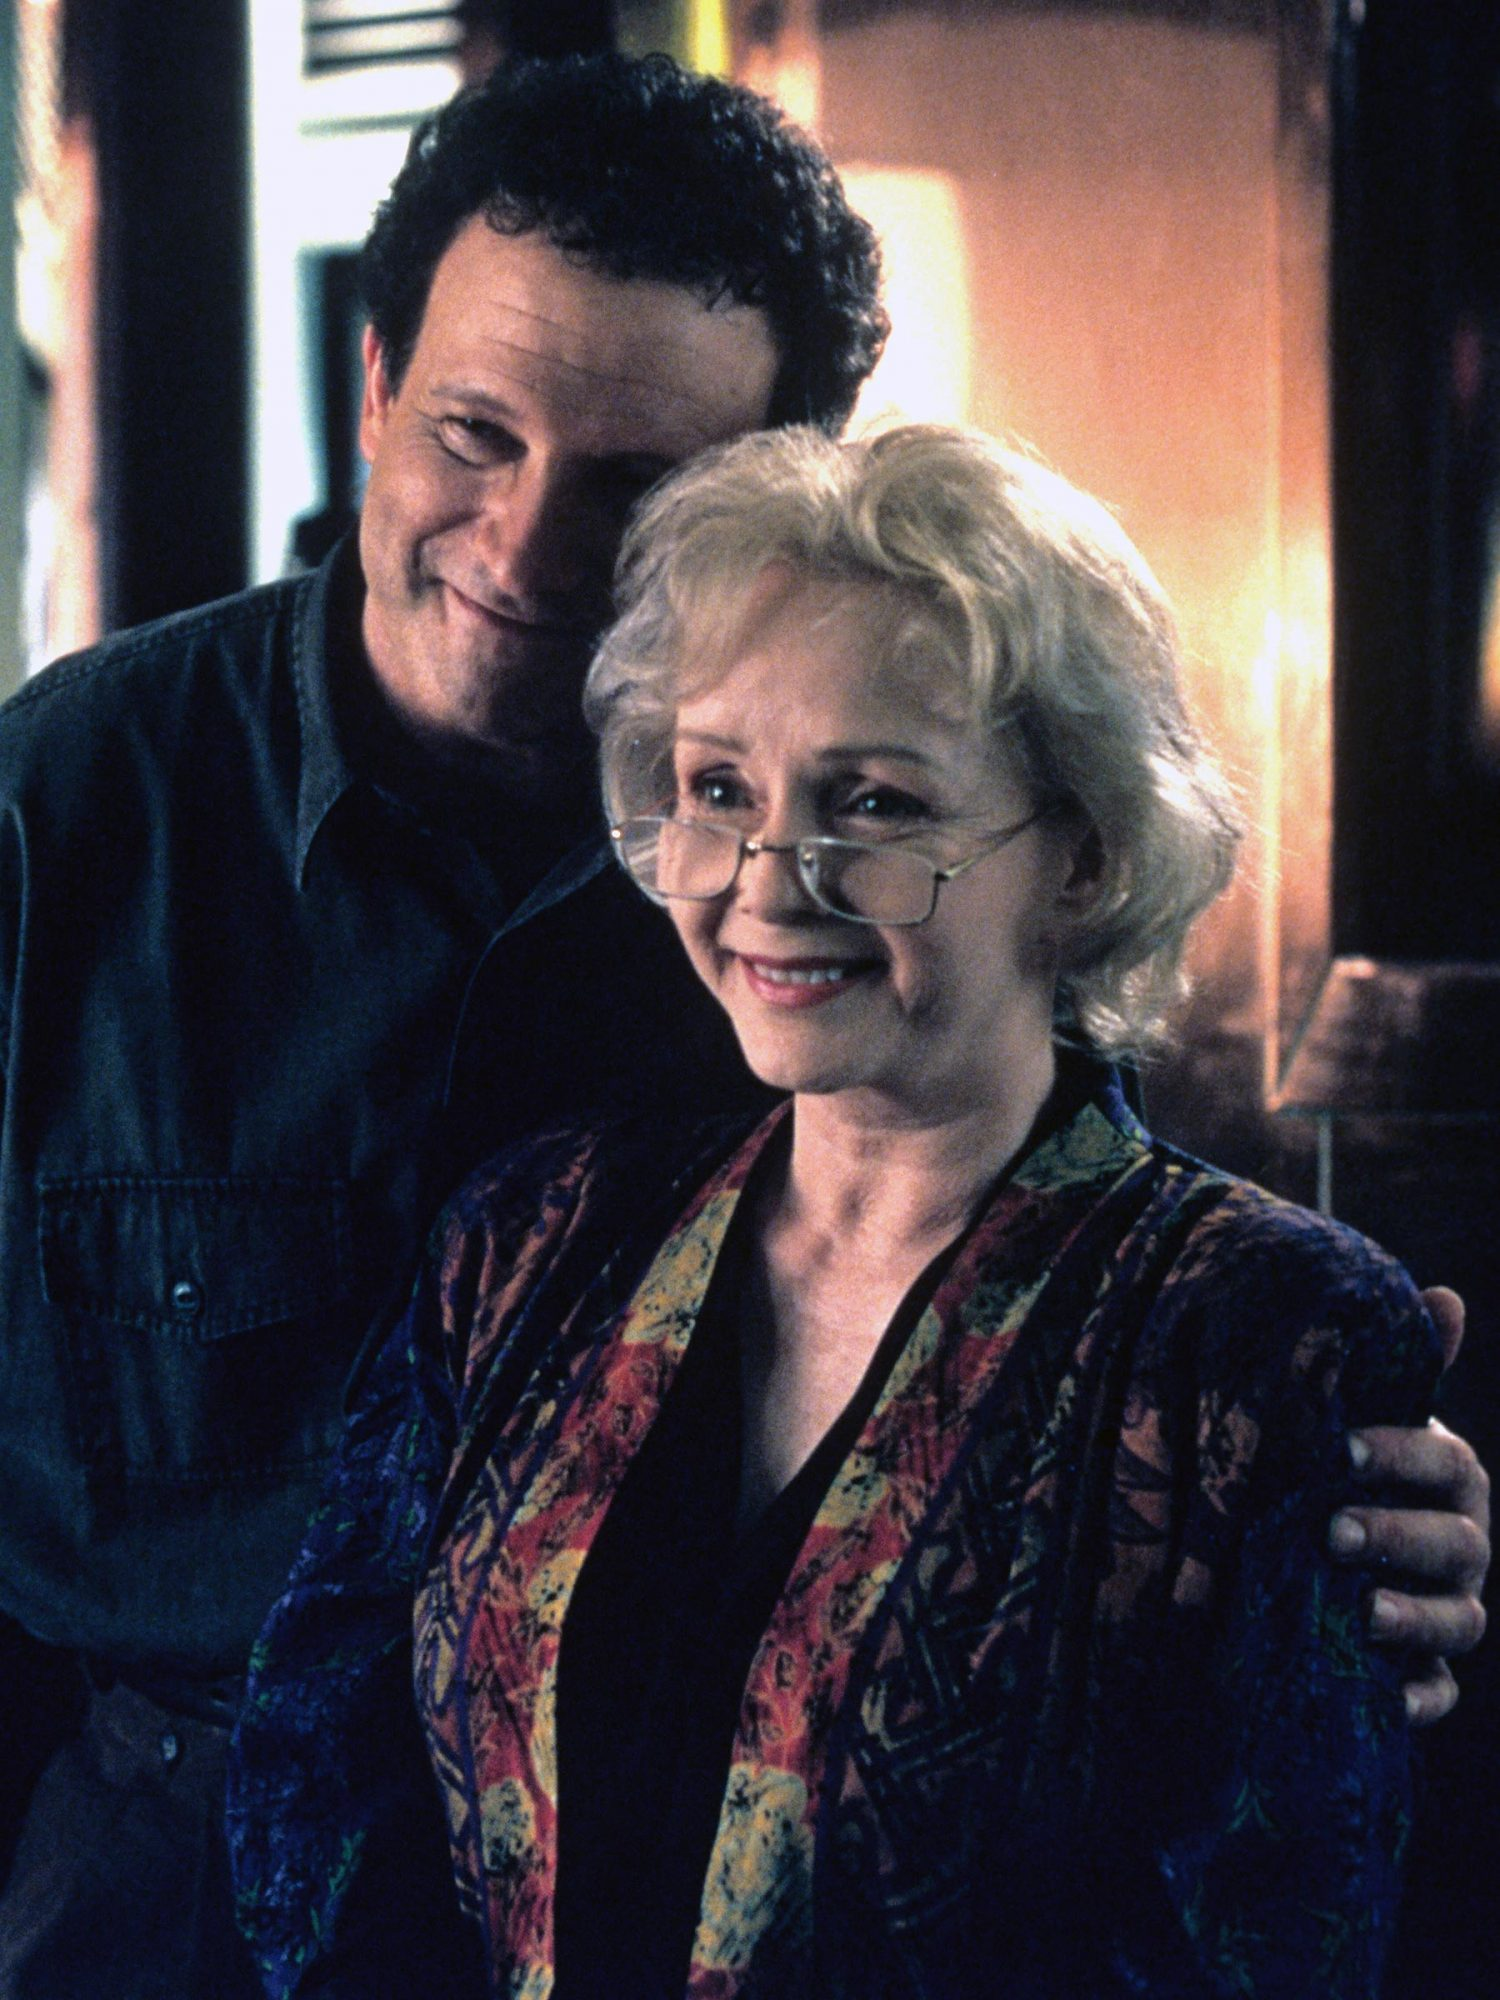 MOTHER, from left: Albert Brooks, Debbie Reynolds, 1996, © Paramount/courtesy Everett Collection